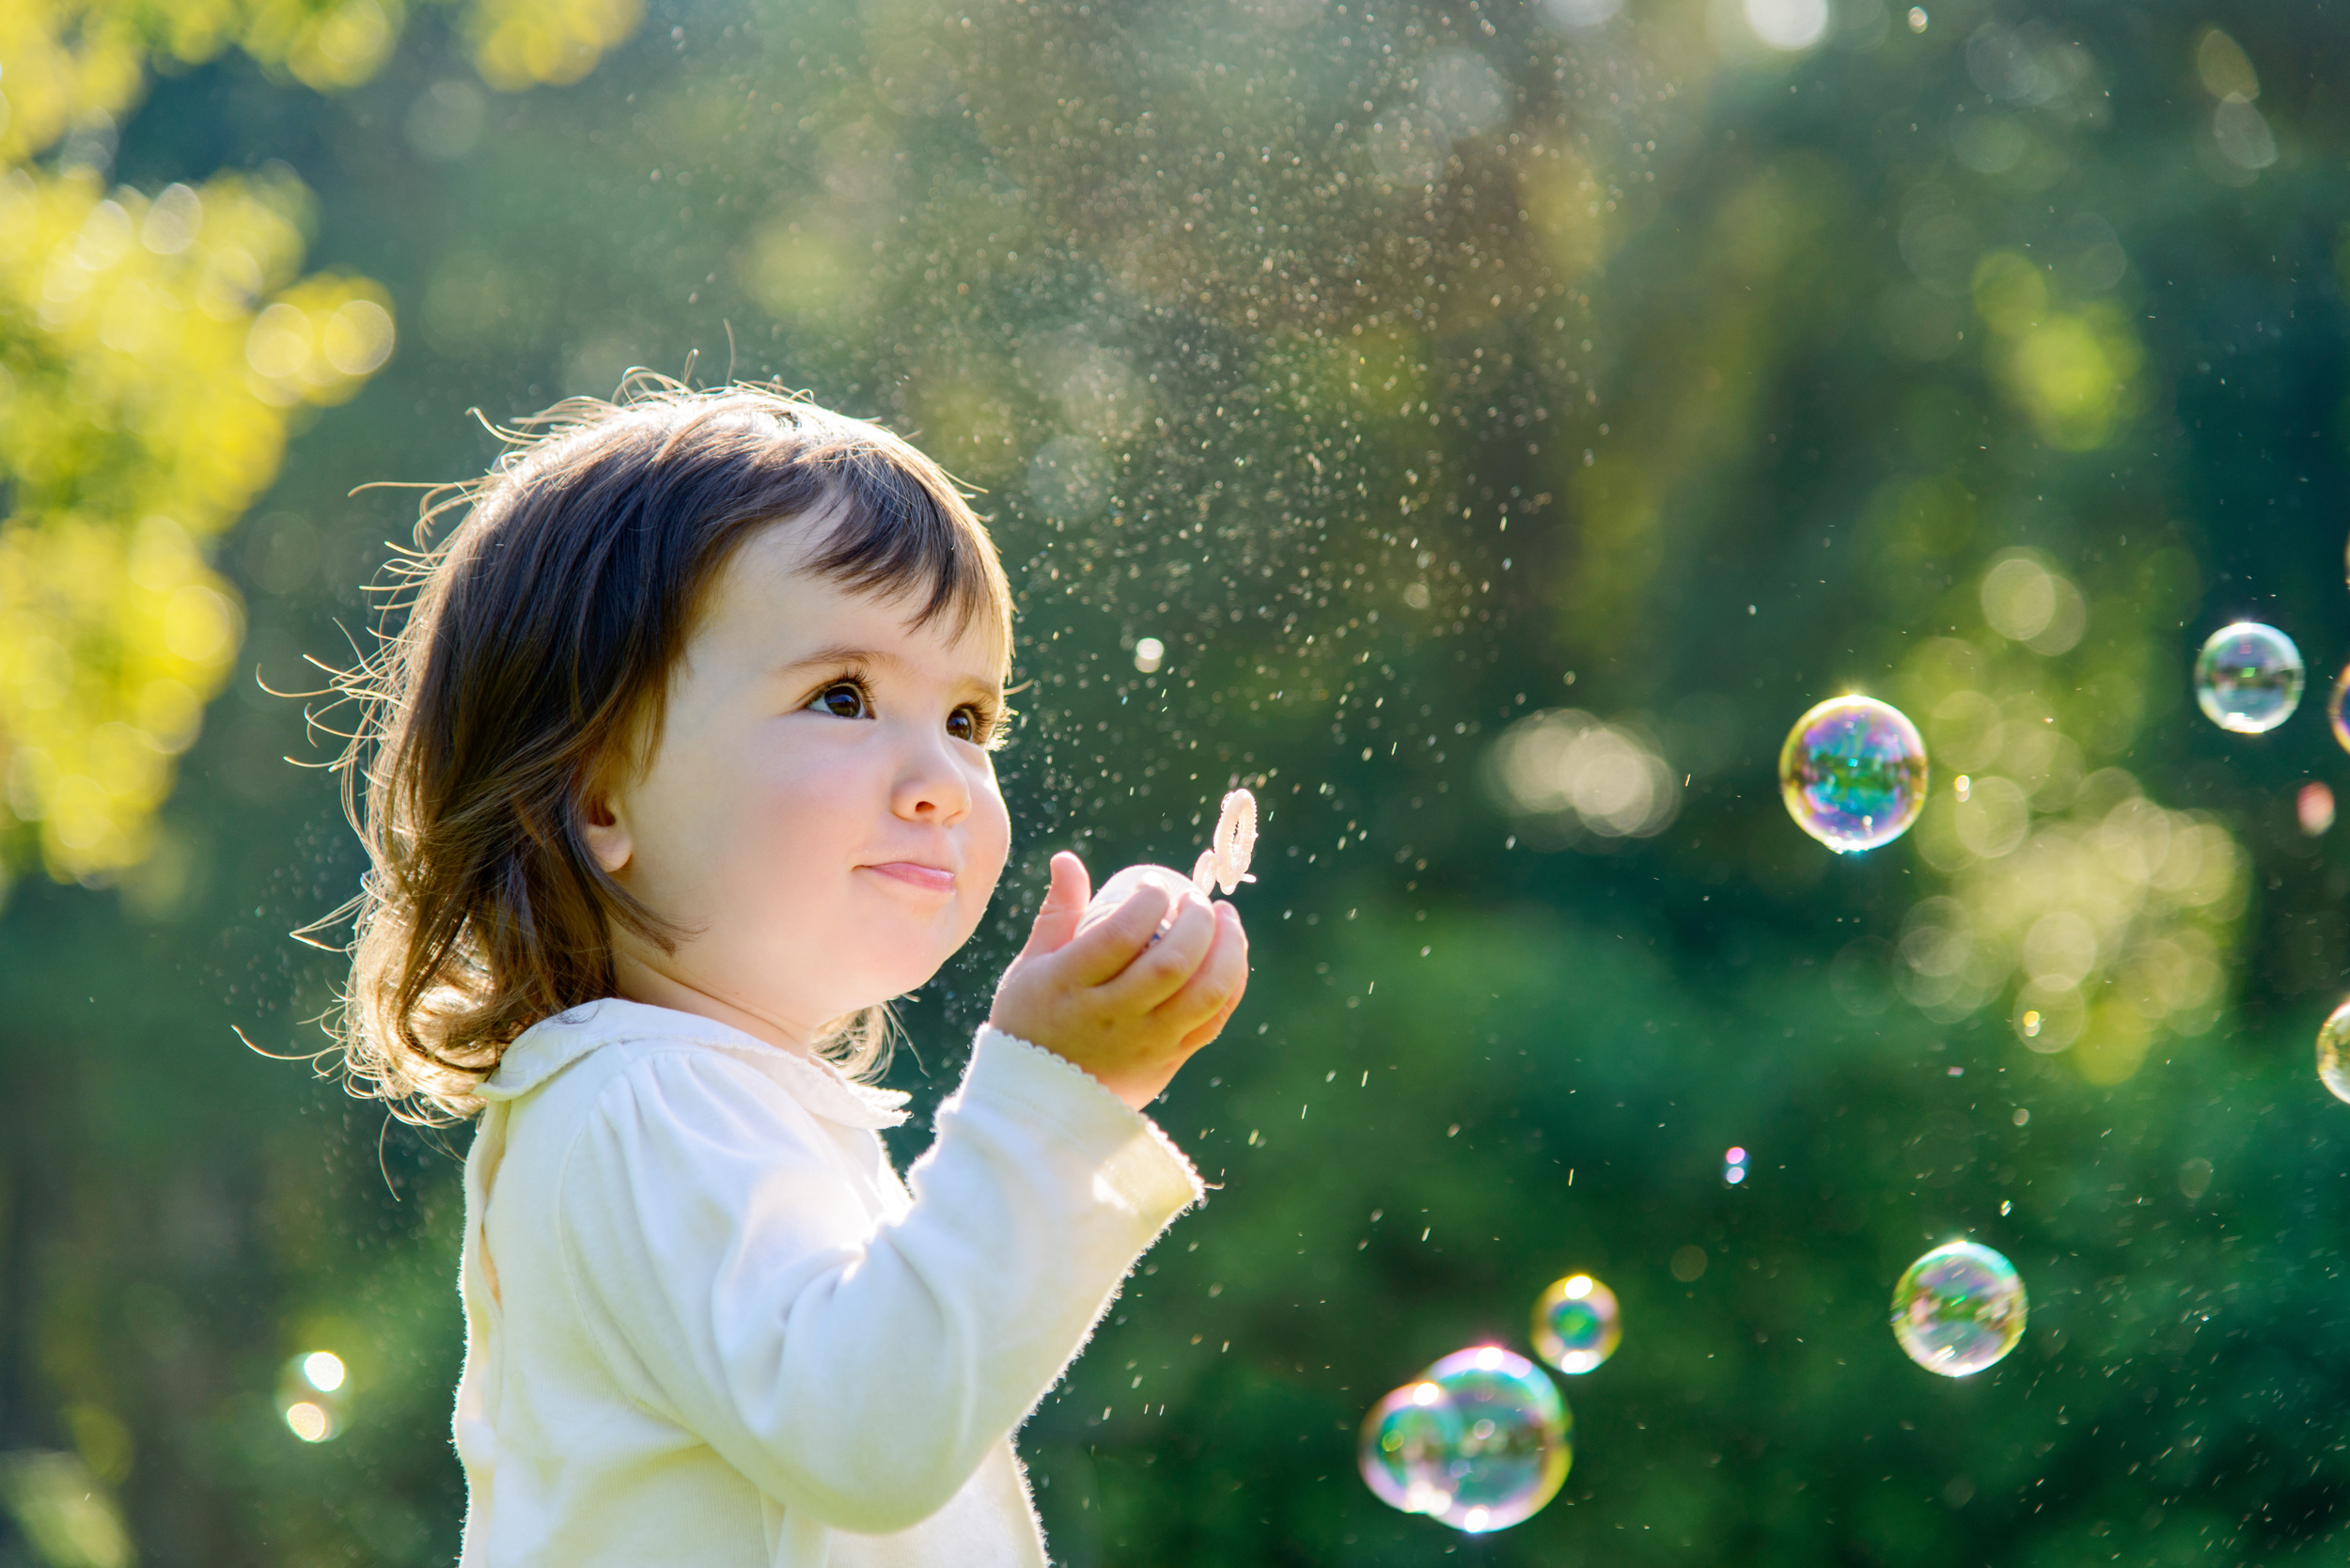 baby-girl-playing-with-soap-bubbles-1